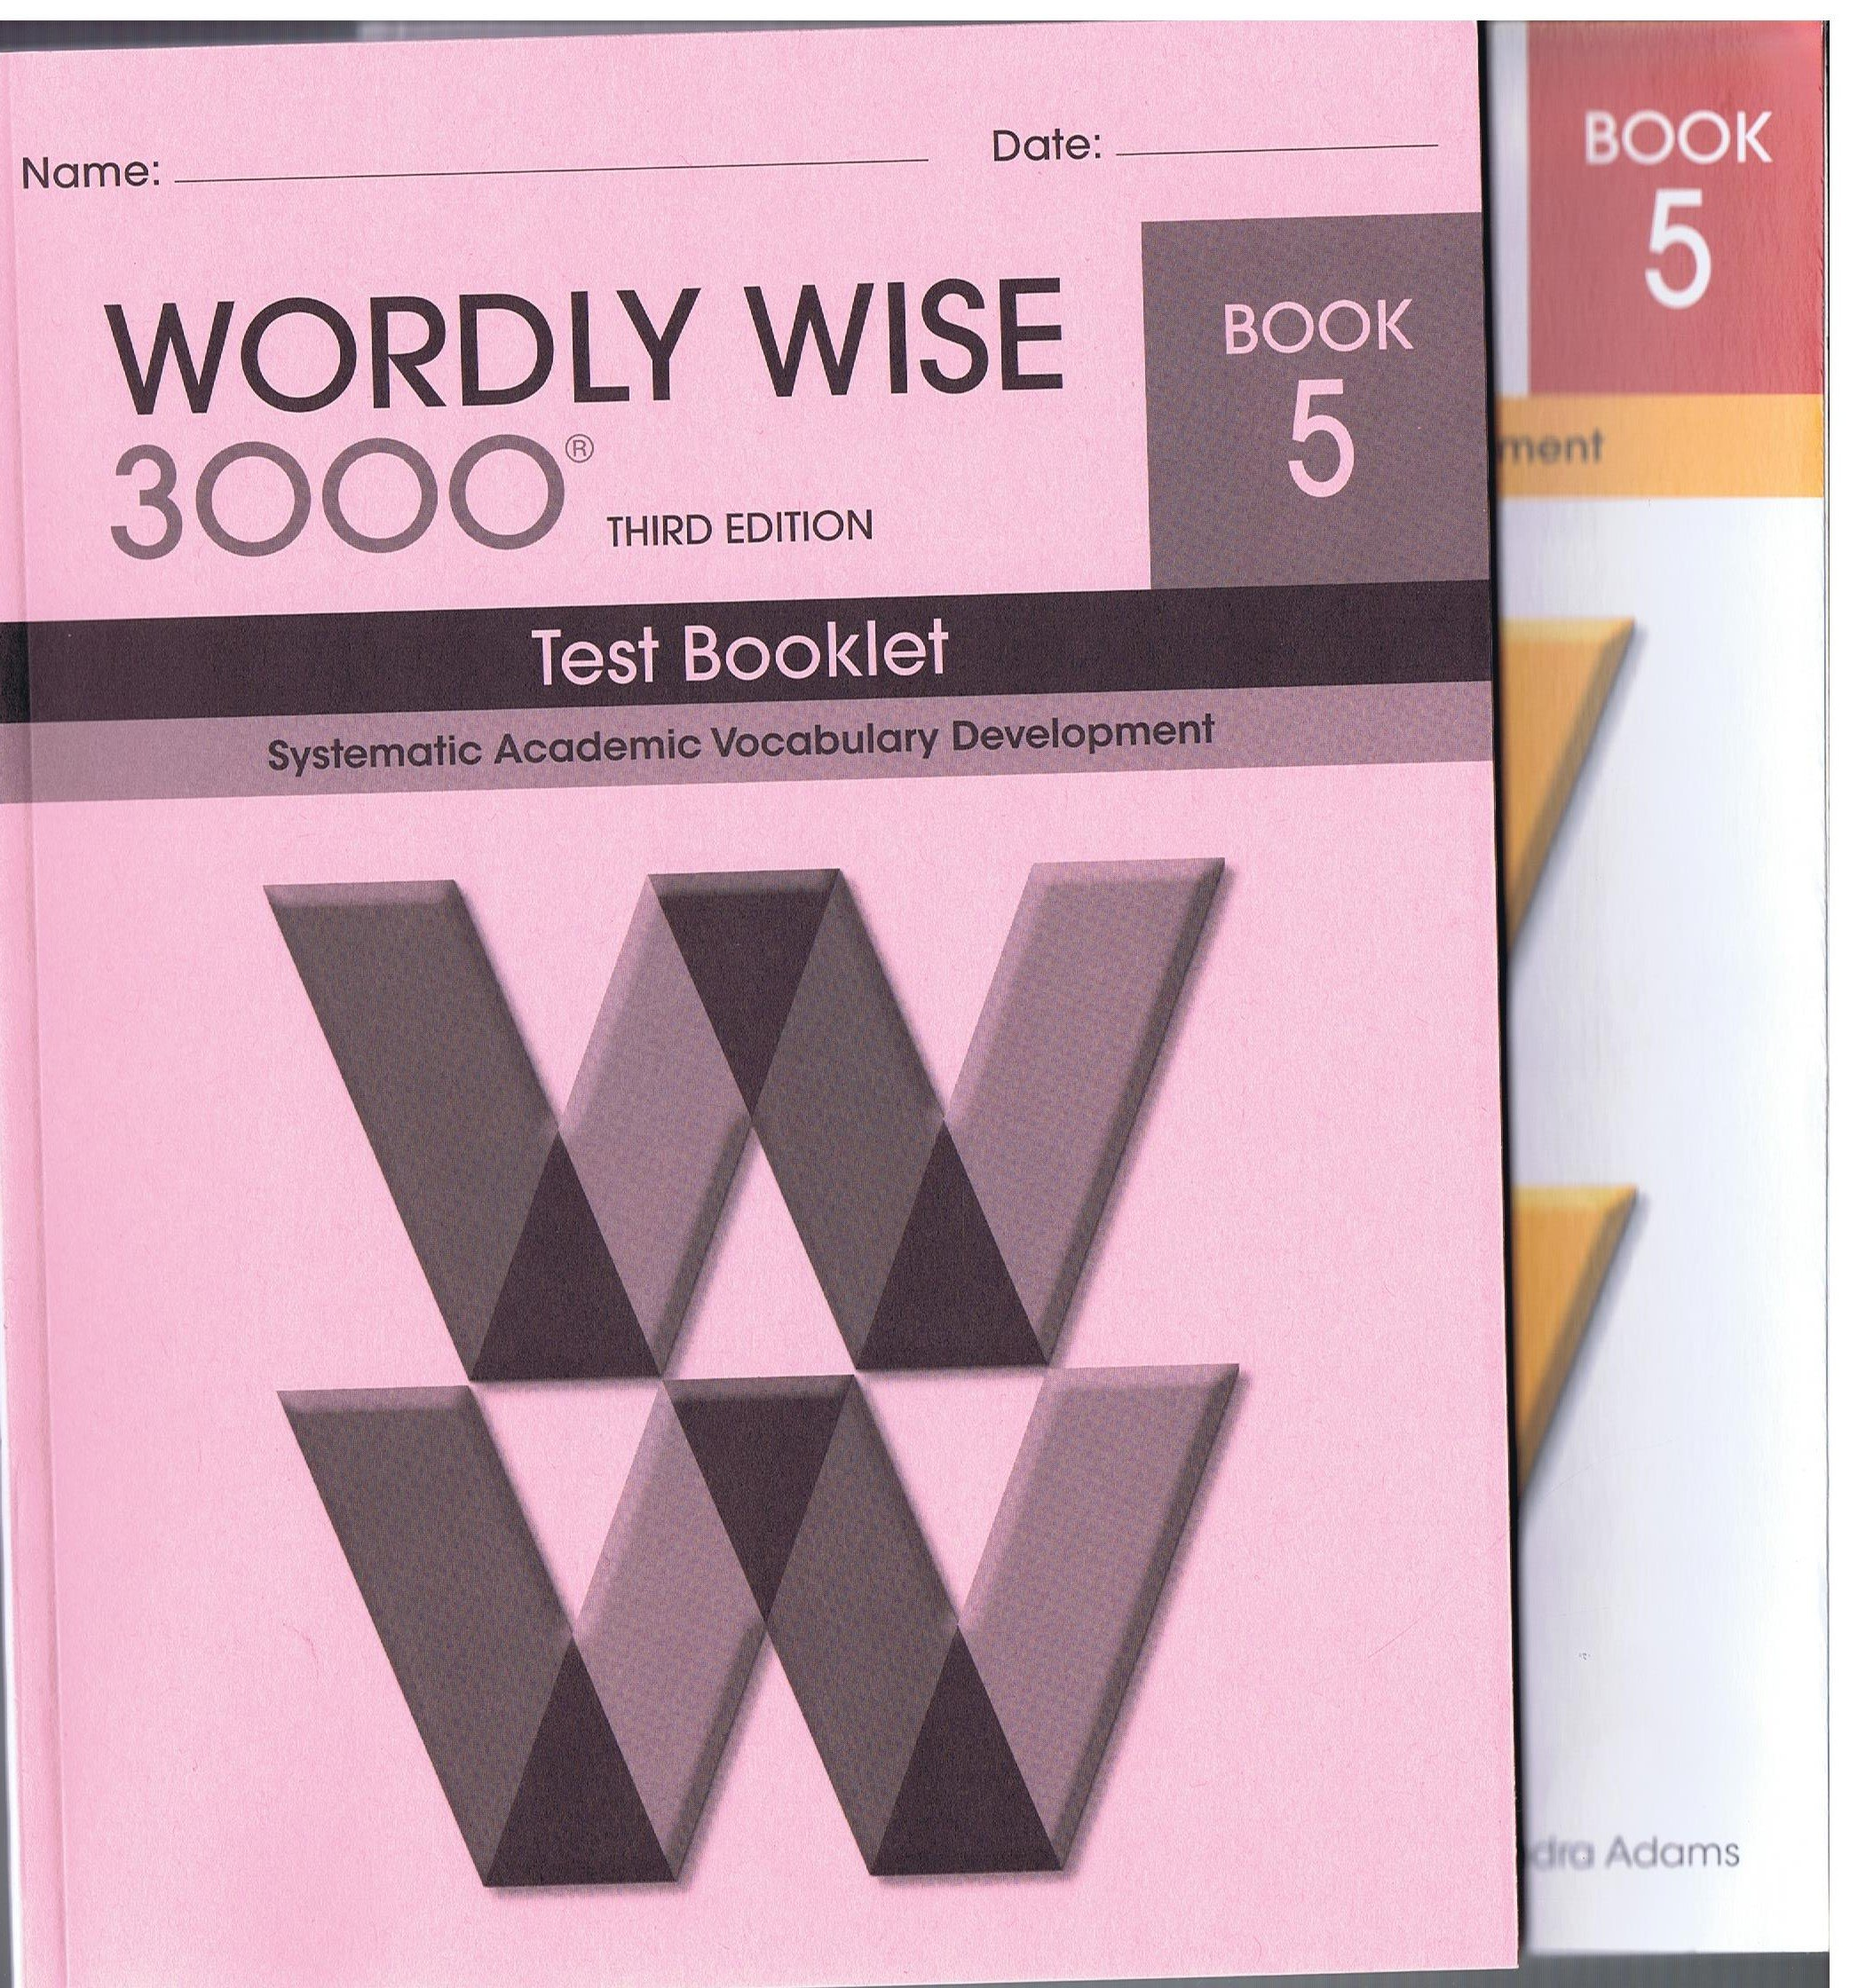 WORDLY WISE 3000 THIRD EDITION BOOK 5 AND TEST BOOKLET: Amazon.com: Books